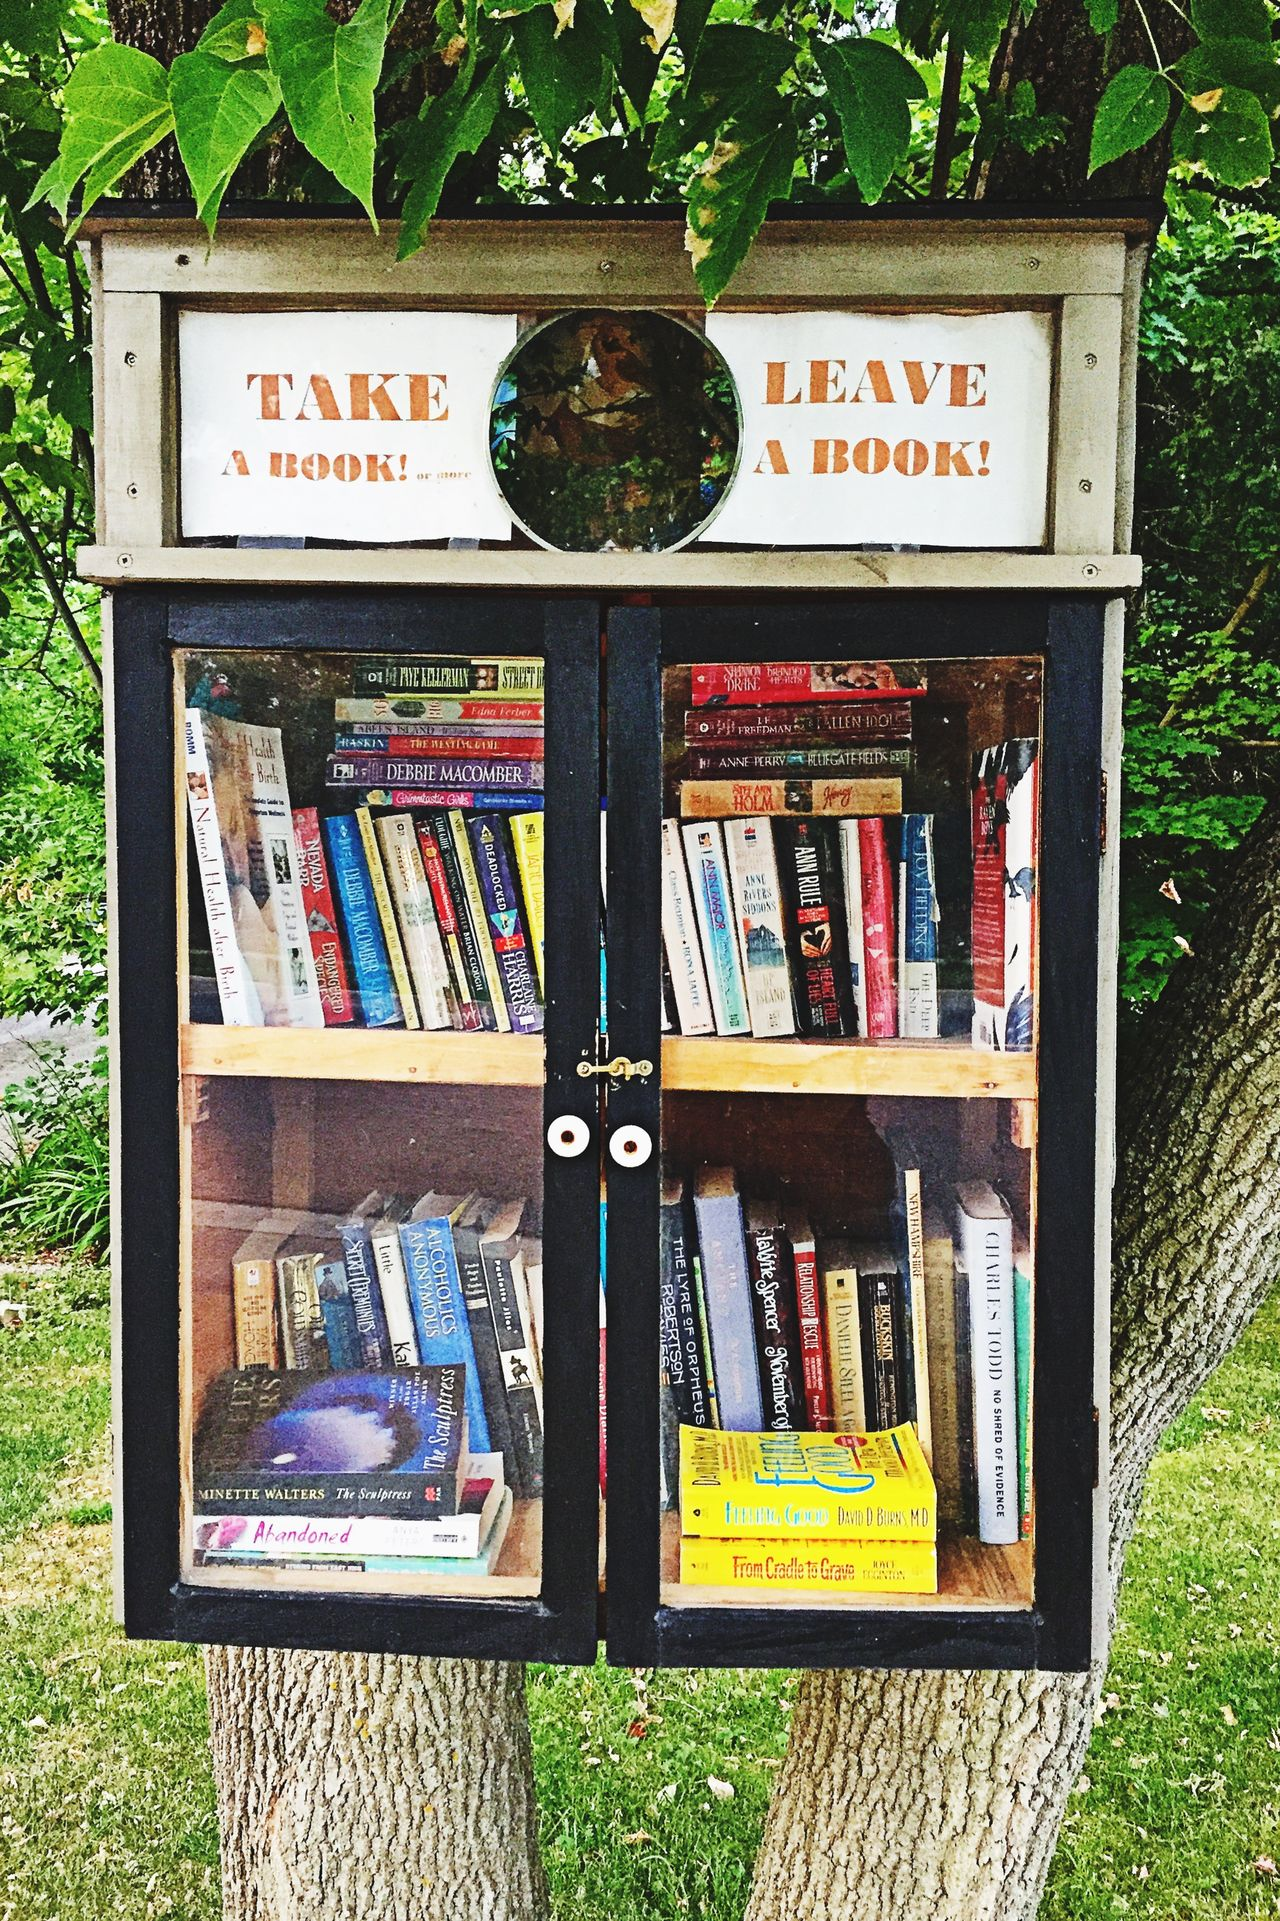 Take A Book Leave A Book Honor Honour Borrowed Books Lend Book Booklover Outdoors Objects Reading Bookcase Outdoor Photography Cool Books ♥ Reading A Book Small Town Things I Like On The Way Kindness Country Life Living Enjoying Life Enjoying The Moment Enjoying Life ♥ ExpressYourself